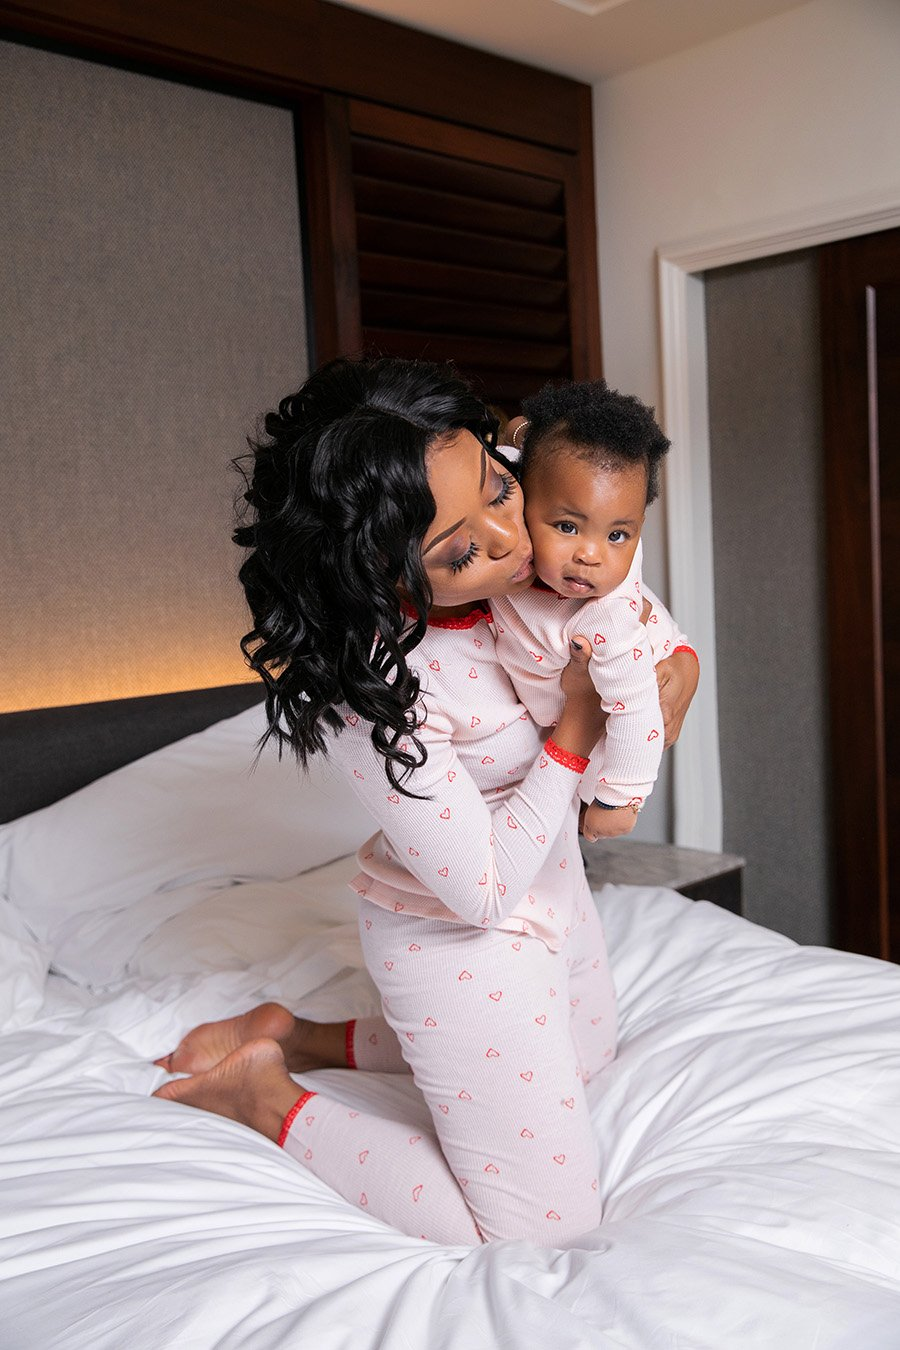 stella-adewunmi-of-jadore-fashion-blog-shares-Most-Used-Baby-Products-for-The-First-Year